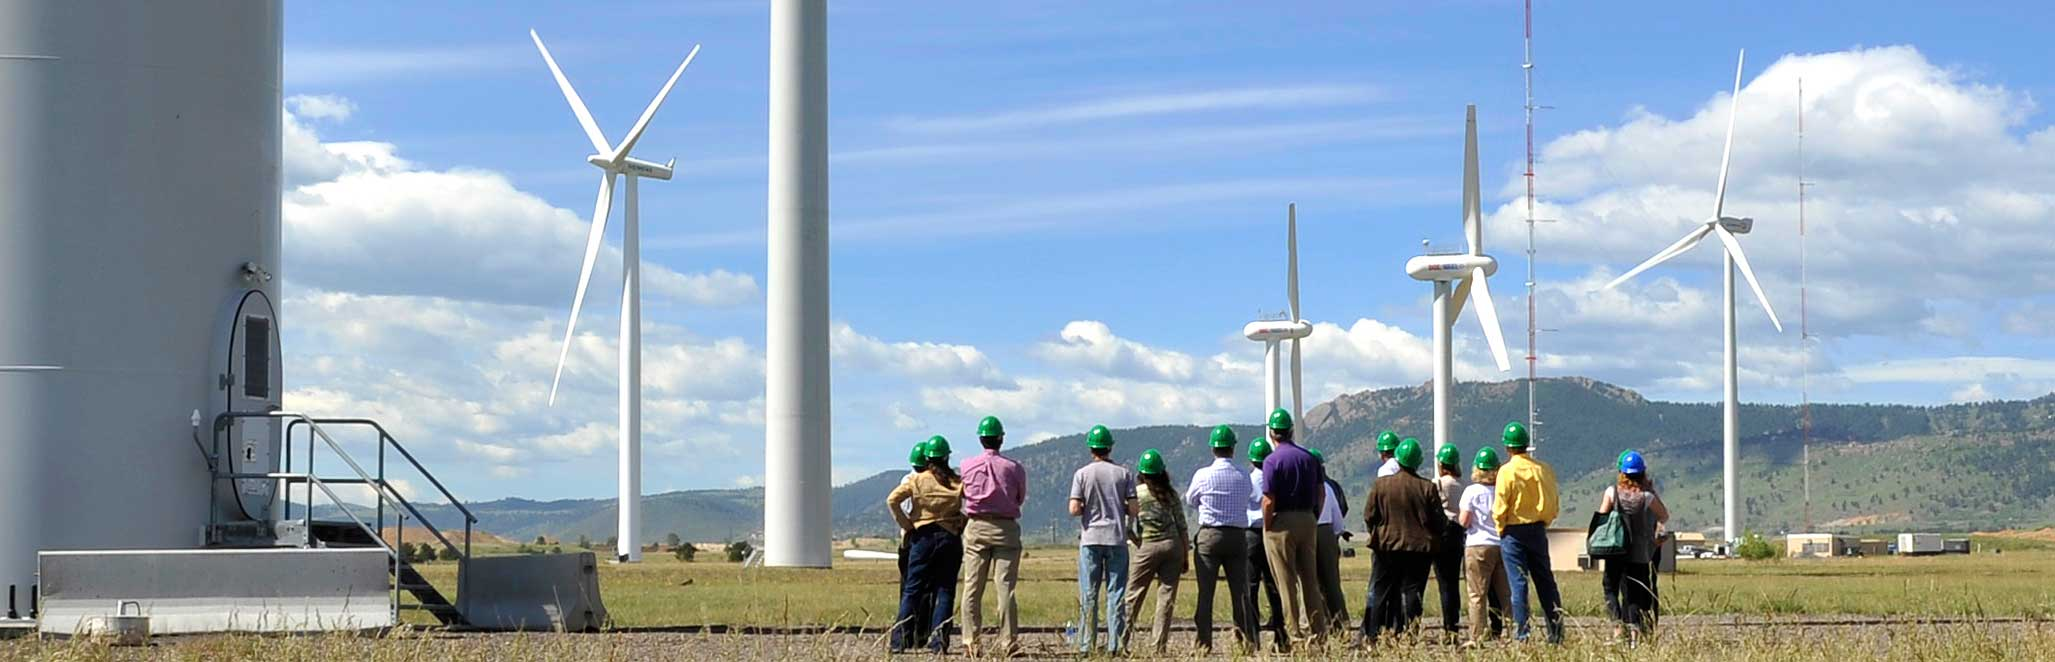 A group of NREL Energy Execs gather around the bottom of a wind turbine with blue skies and fields in the foreground.